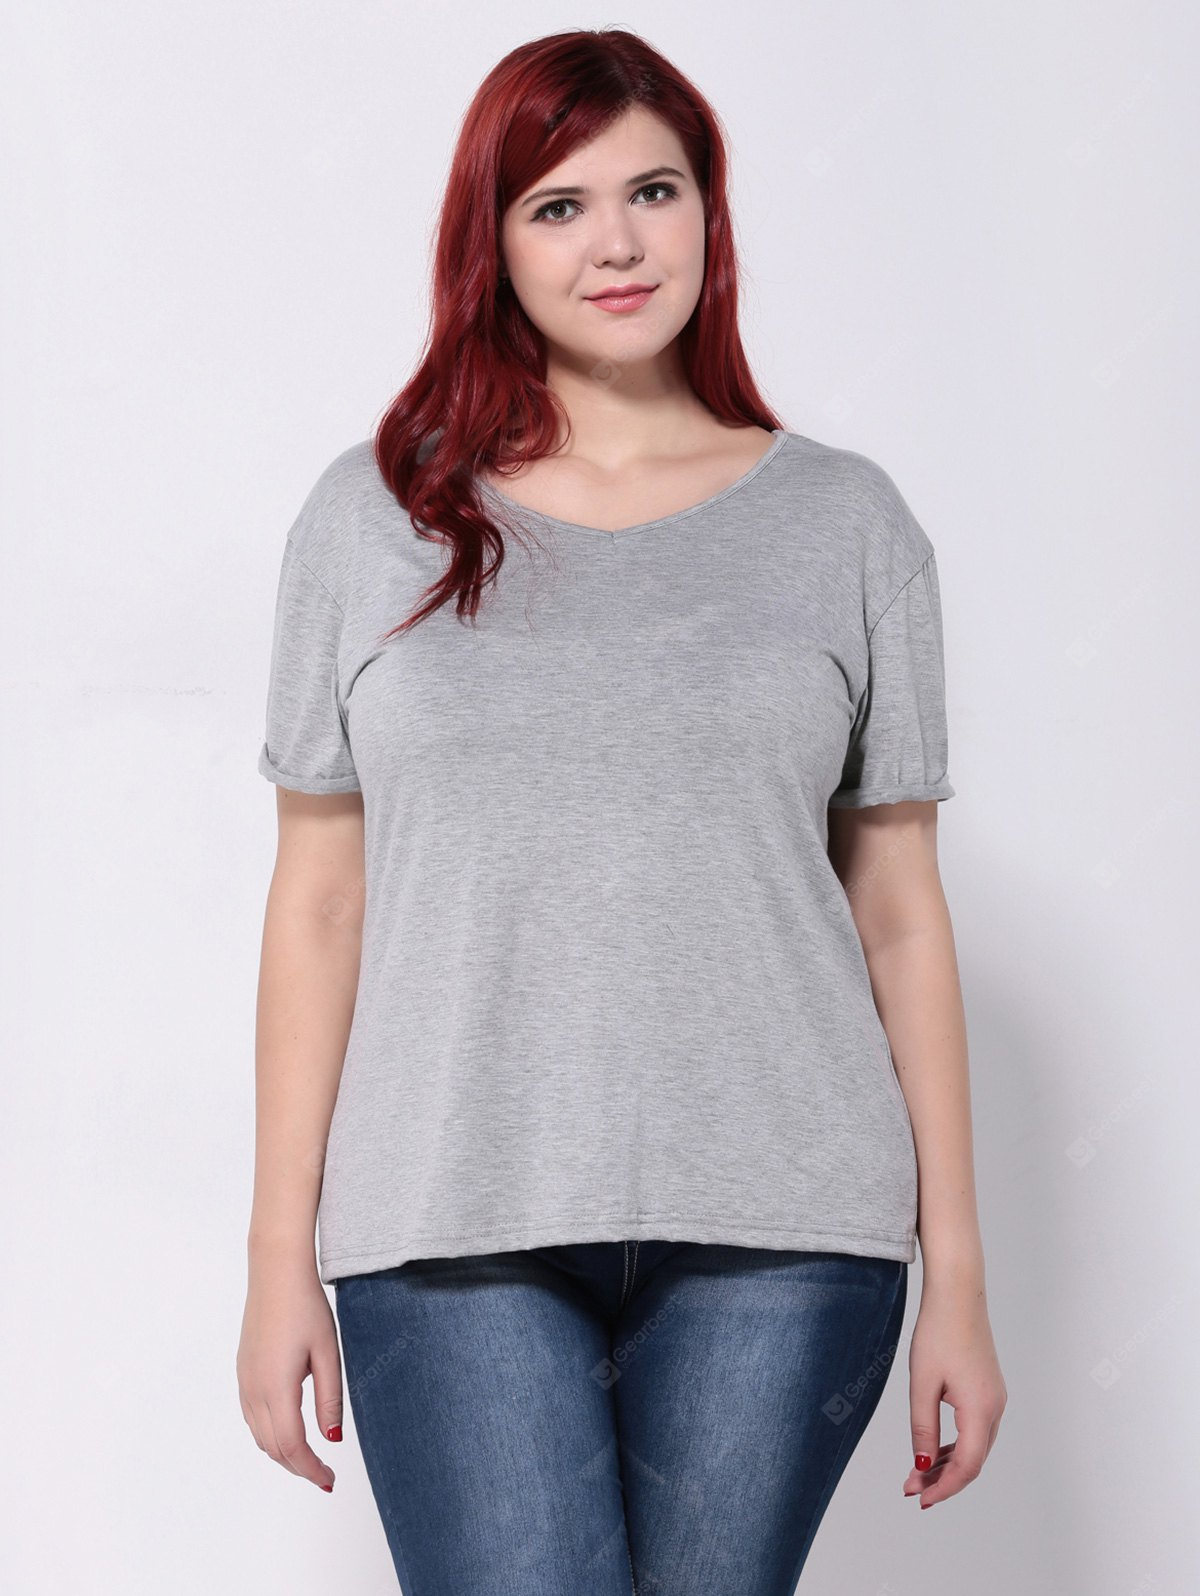 Hemming Sleeves Tropfen Schulter-T-Shirt